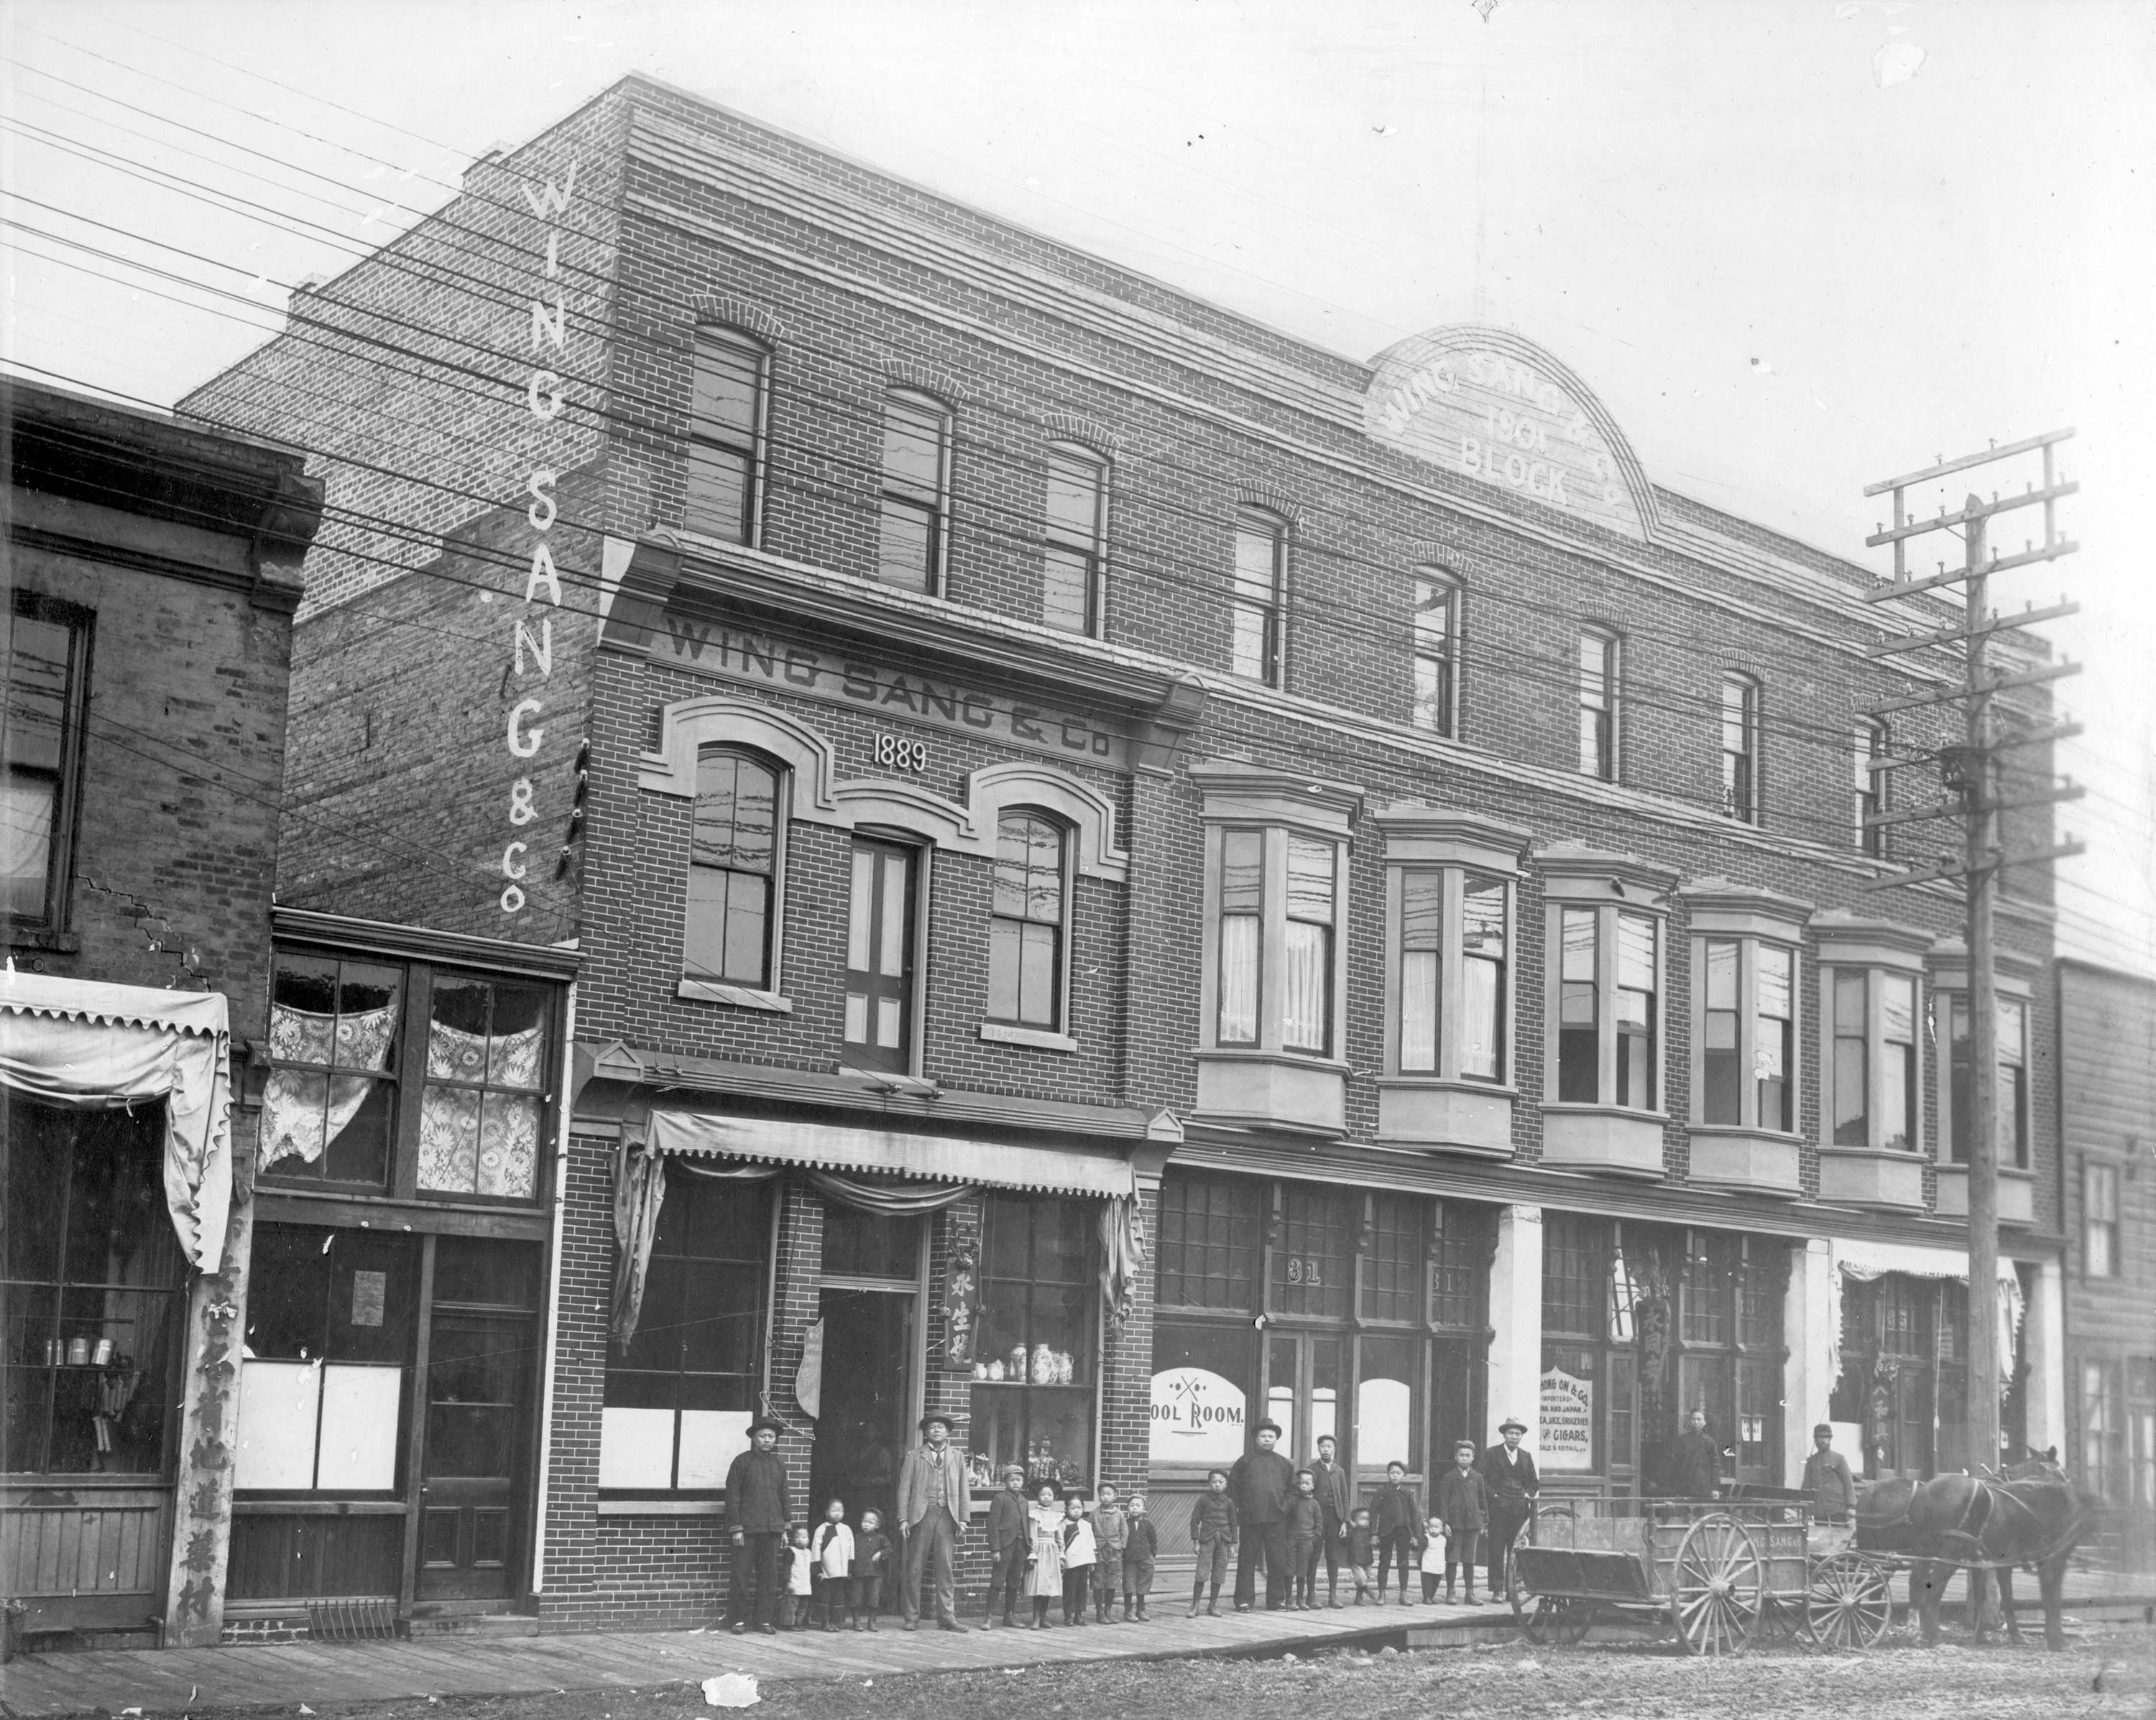 Wing Sang building, ca. 1901-07. Photographer unknown. City of Vancouver Archives CVA 689-54 永生號大樓, 攝於約1901-1907年間。温哥華檔案館相片編號﹕CVA 689-54